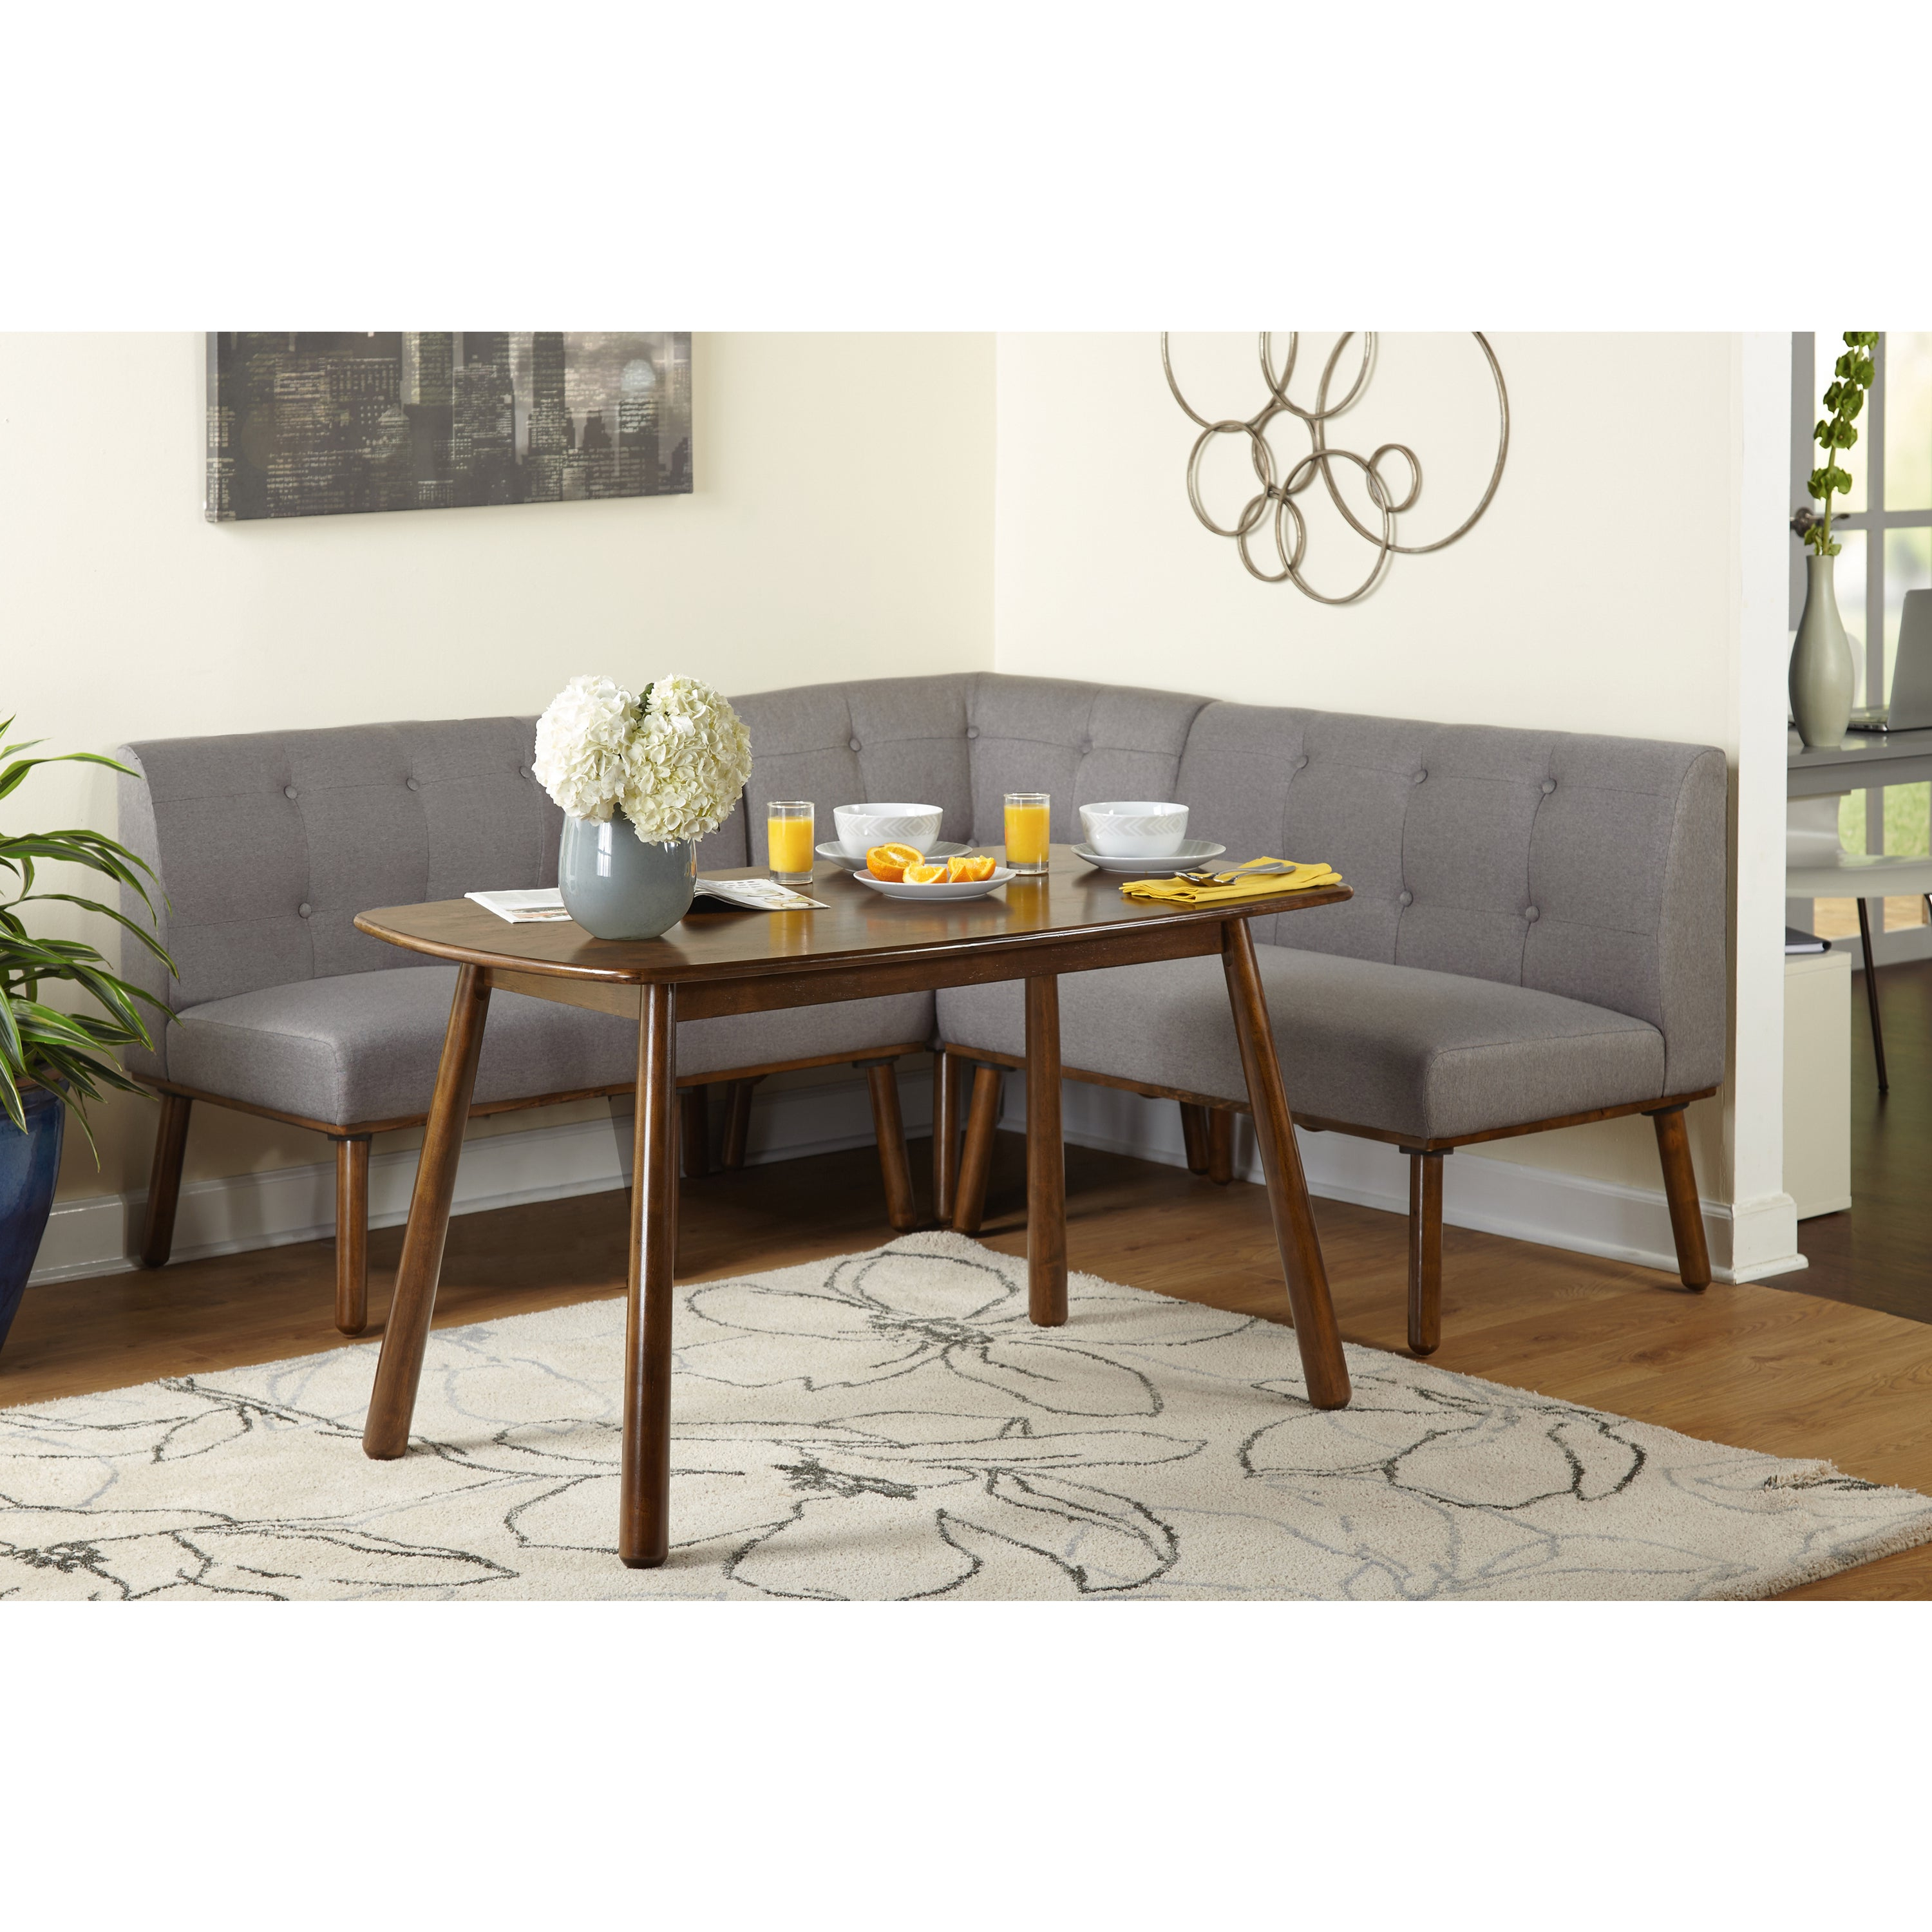 Current Simple Living 4 Piece Playmate Nook Dining Set Regarding Maloney 3 Piece Breakfast Nook Dining Sets (View 3 of 20)